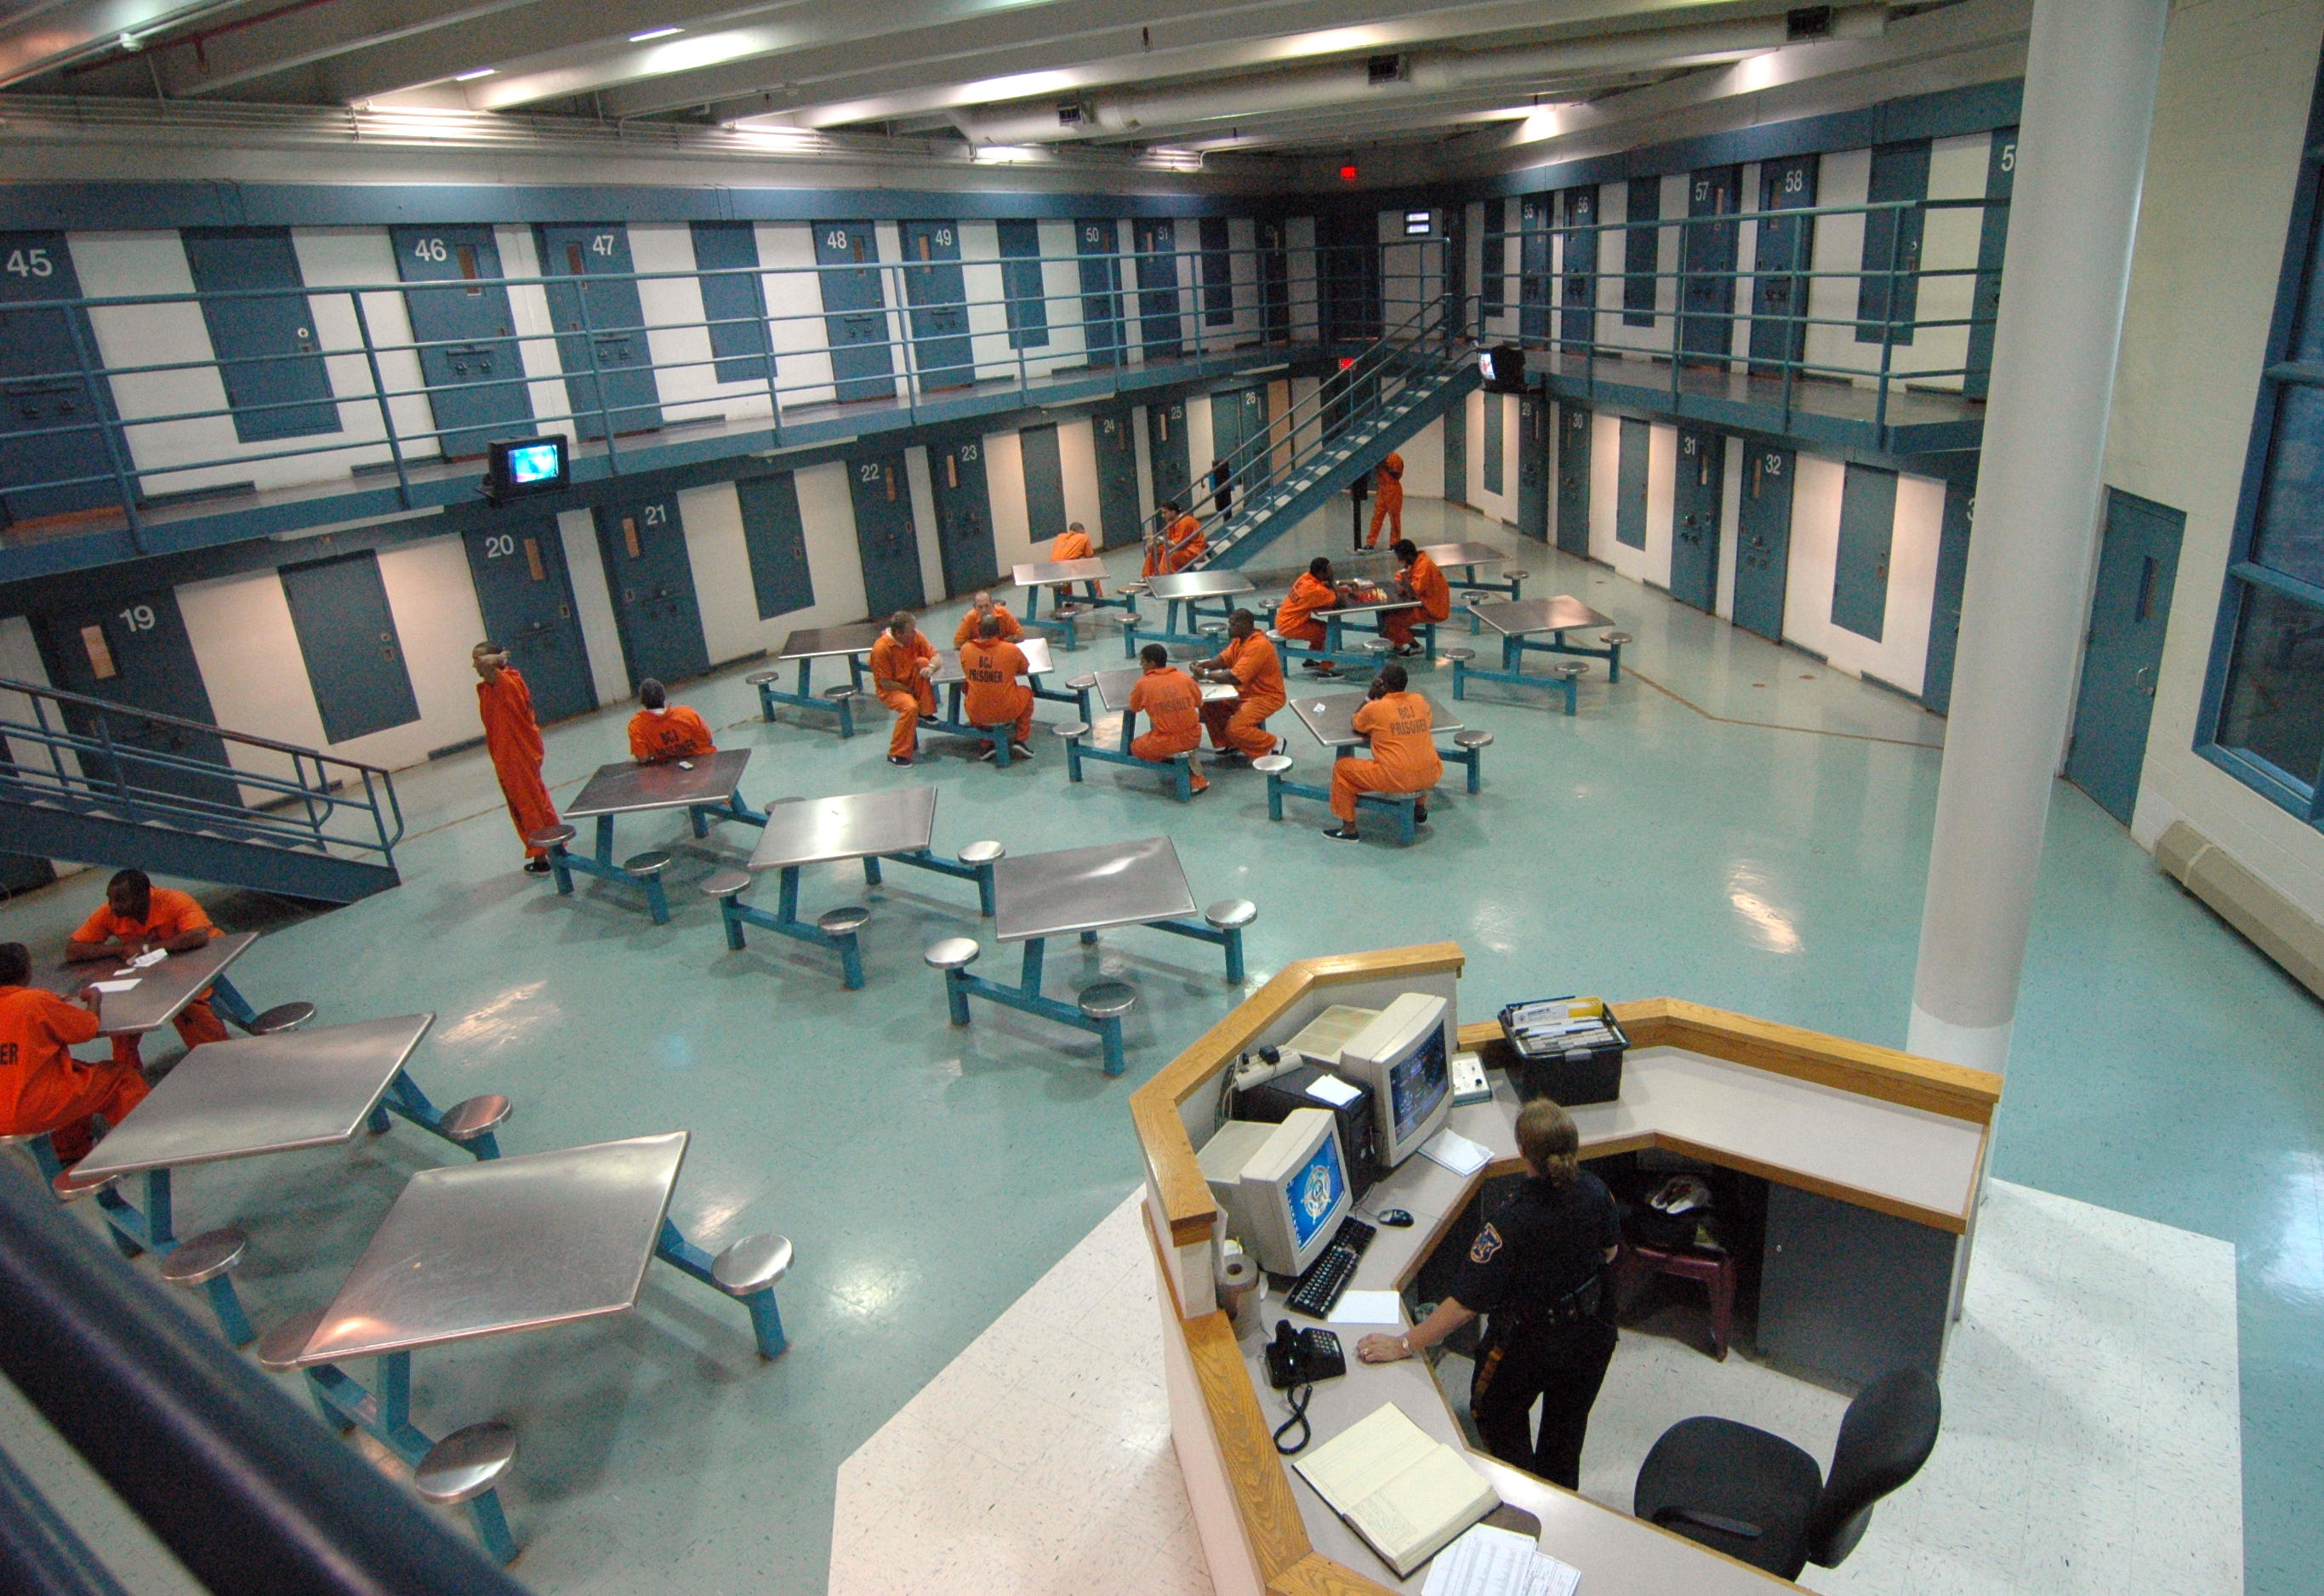 Bergen County Jail (United States of America) - Inside